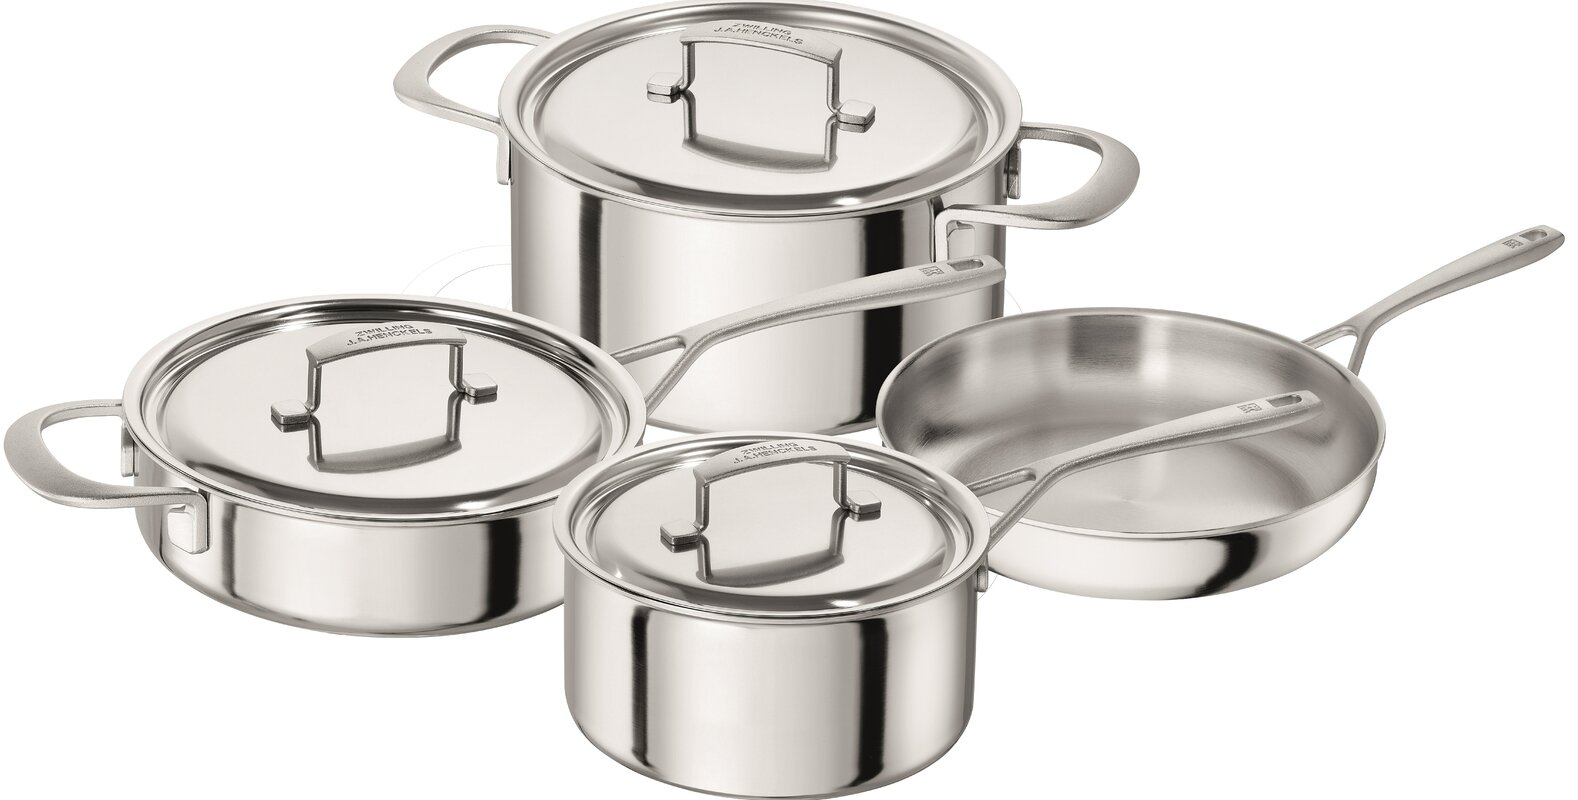 Zwilling JA Henckels Sensation 5-ply 7-pc Stainless Steel Cookware ...